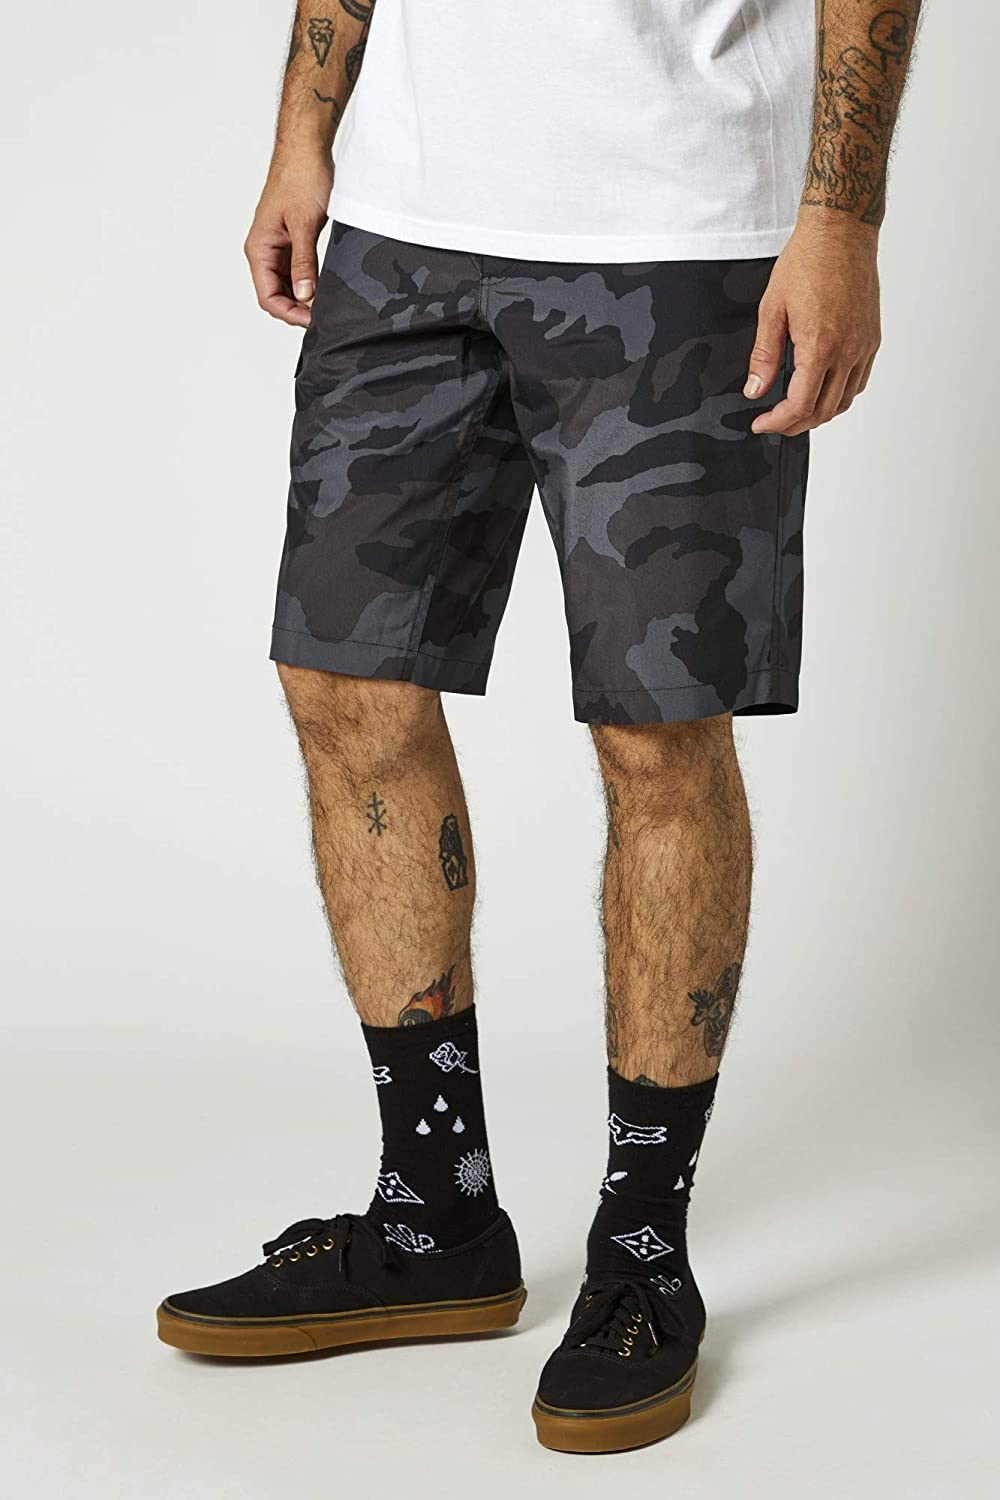 Price Our shop most popular reduction Fox Racing Men's Hybrid Shorts